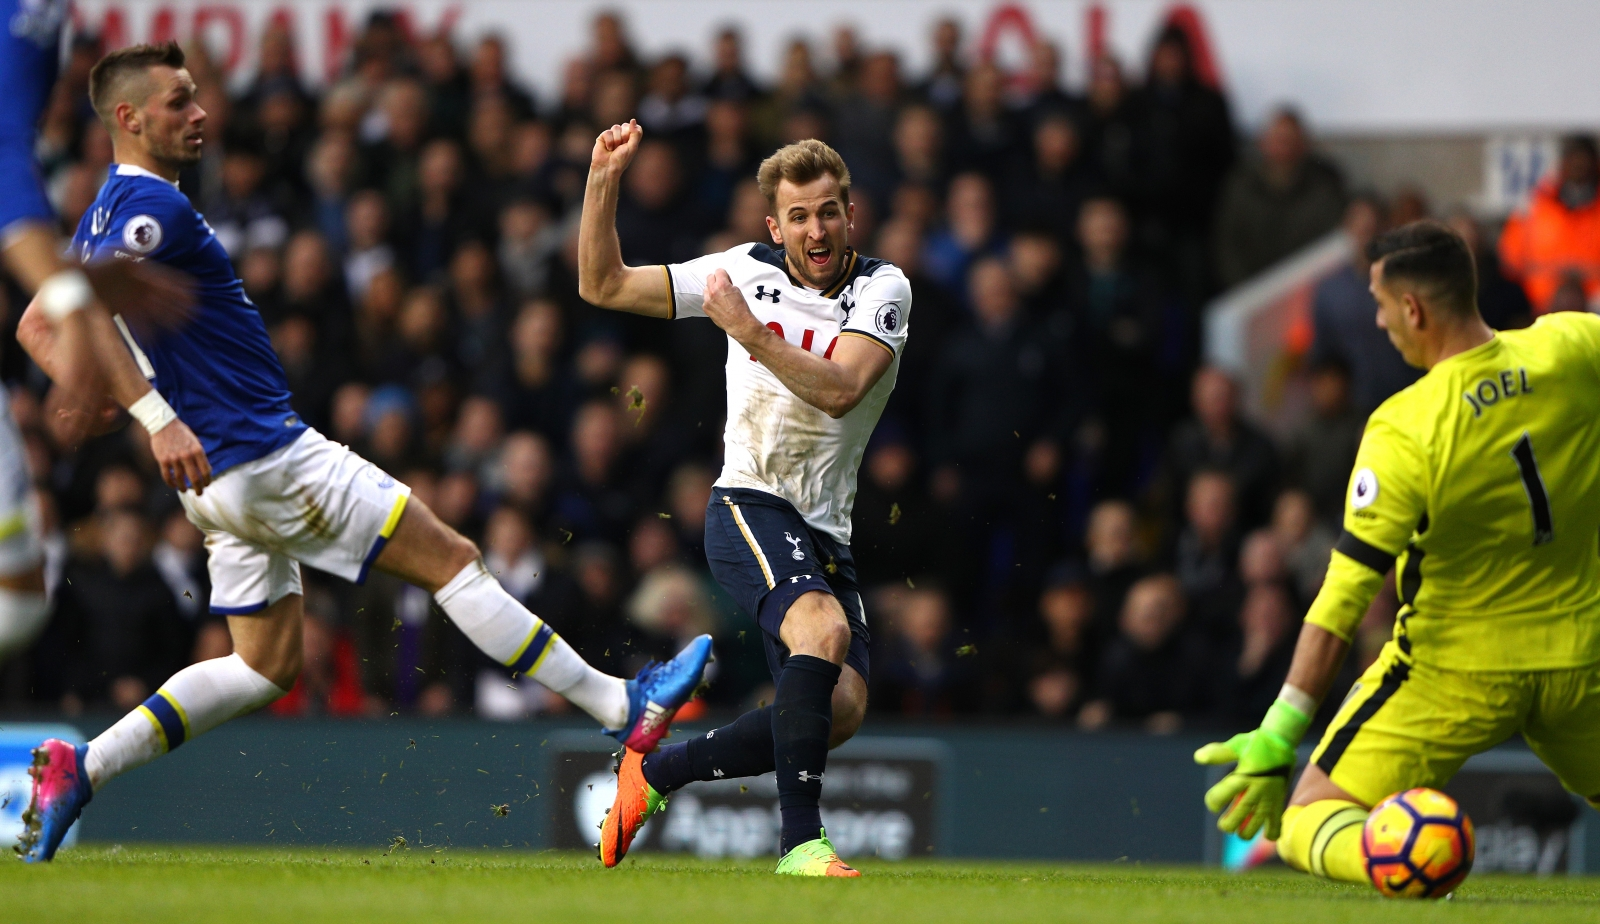 Tottenham 3-2 Everton: Spurs hold on for win after Kane brace